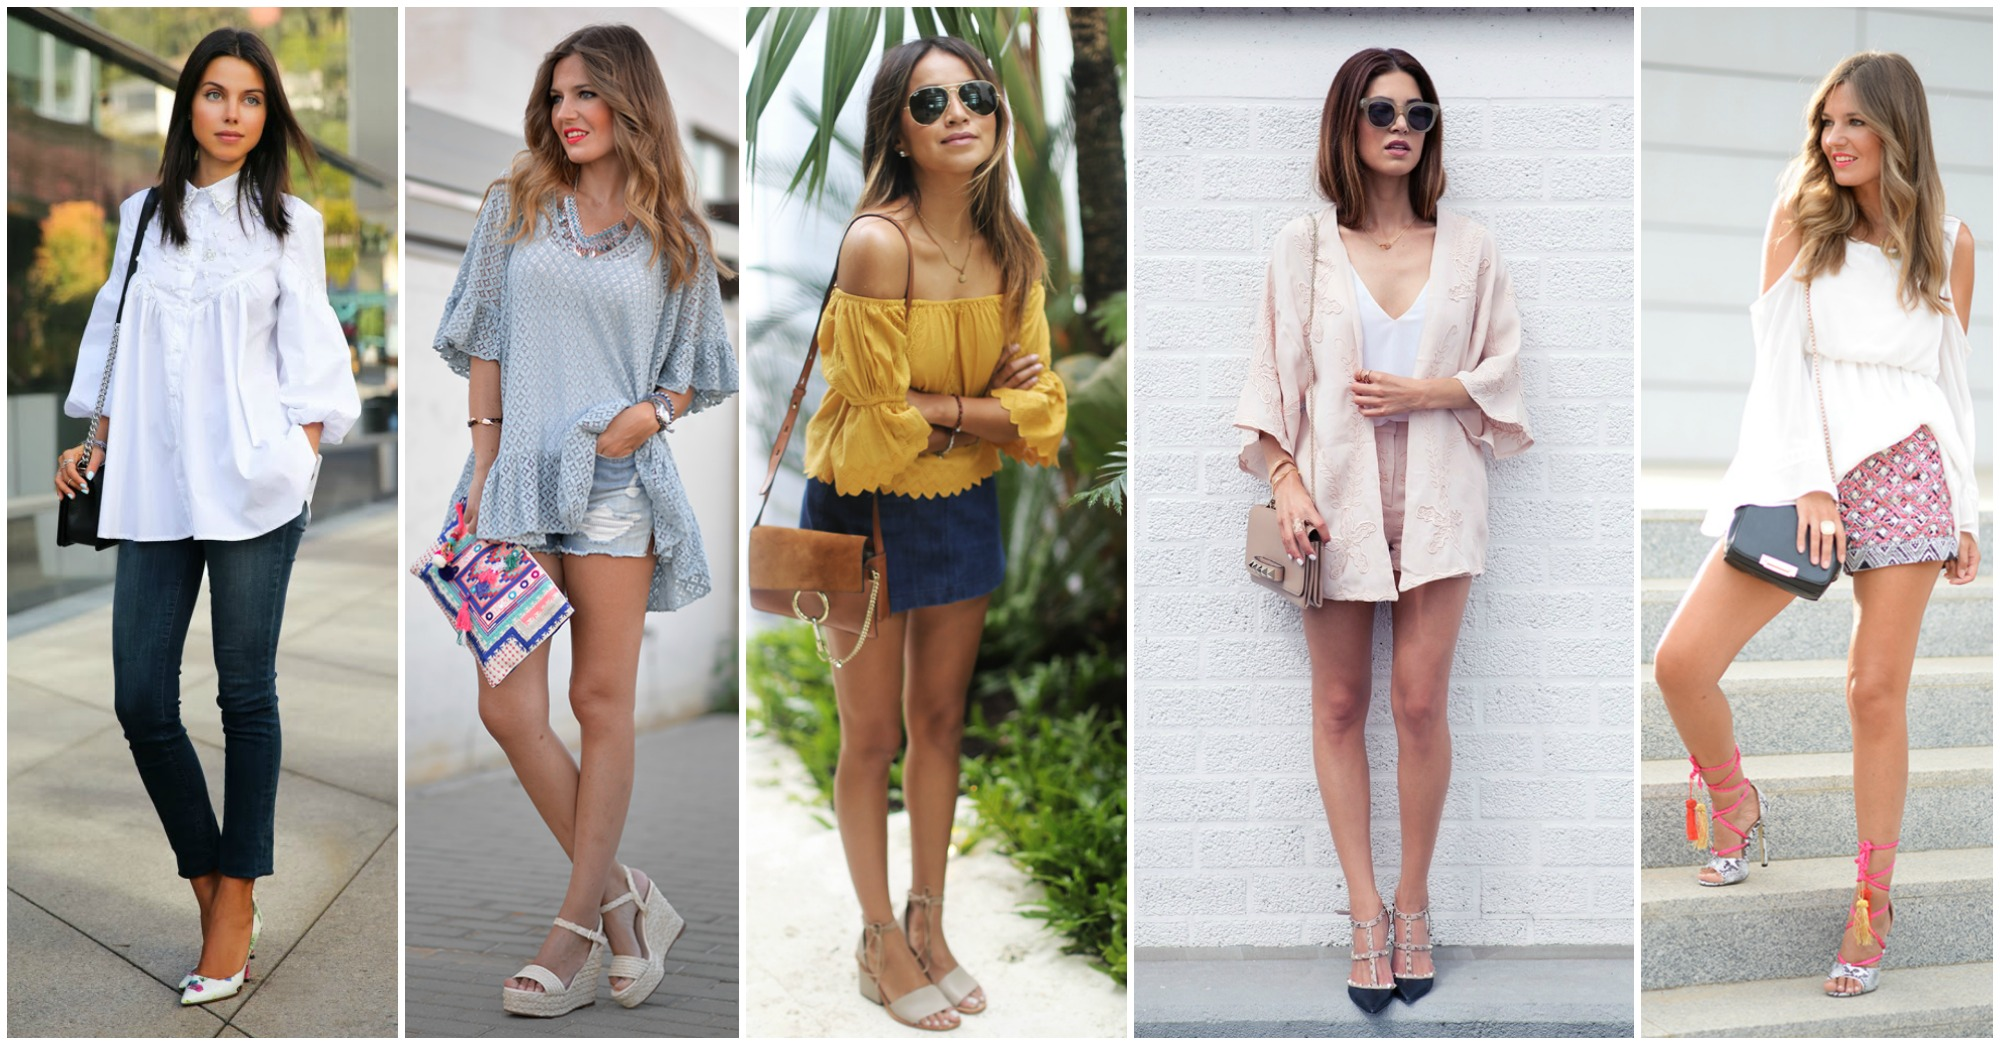 15 Outfits to Follow The Bell Sleeve Trend